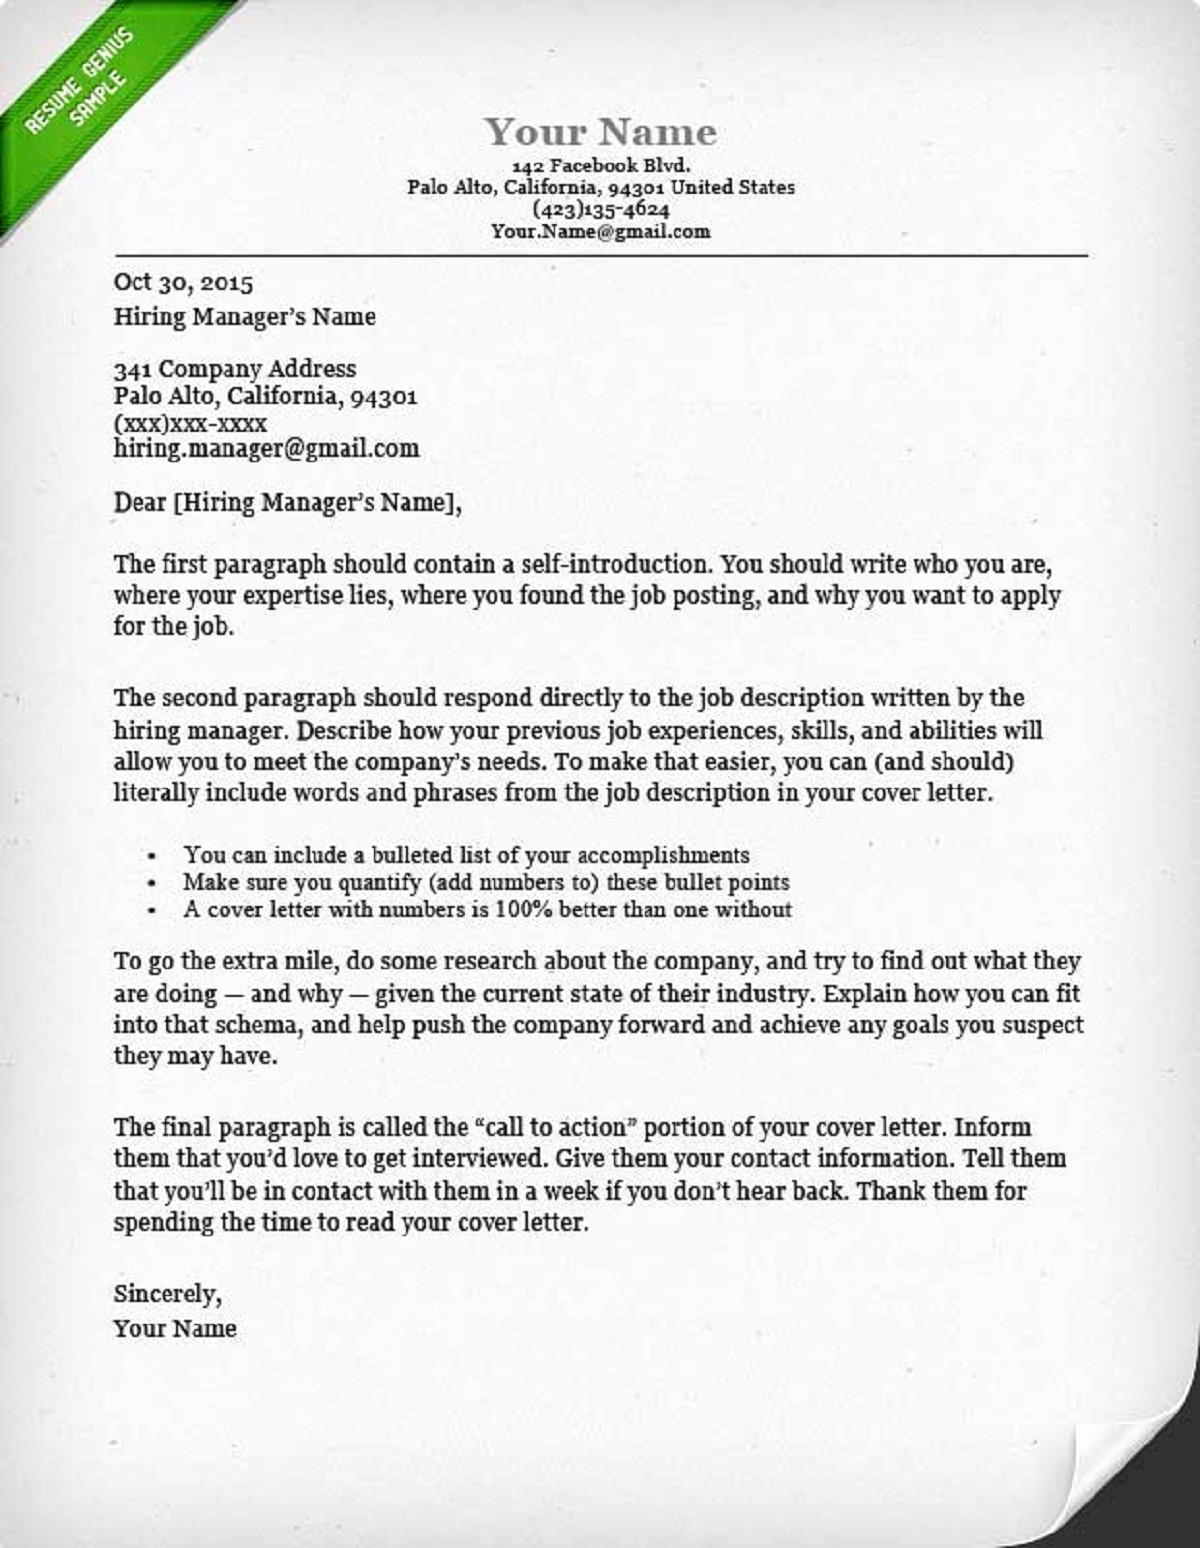 Resume and Cover Letter format Luxury How to Write A Cover Letter Guide with Sample